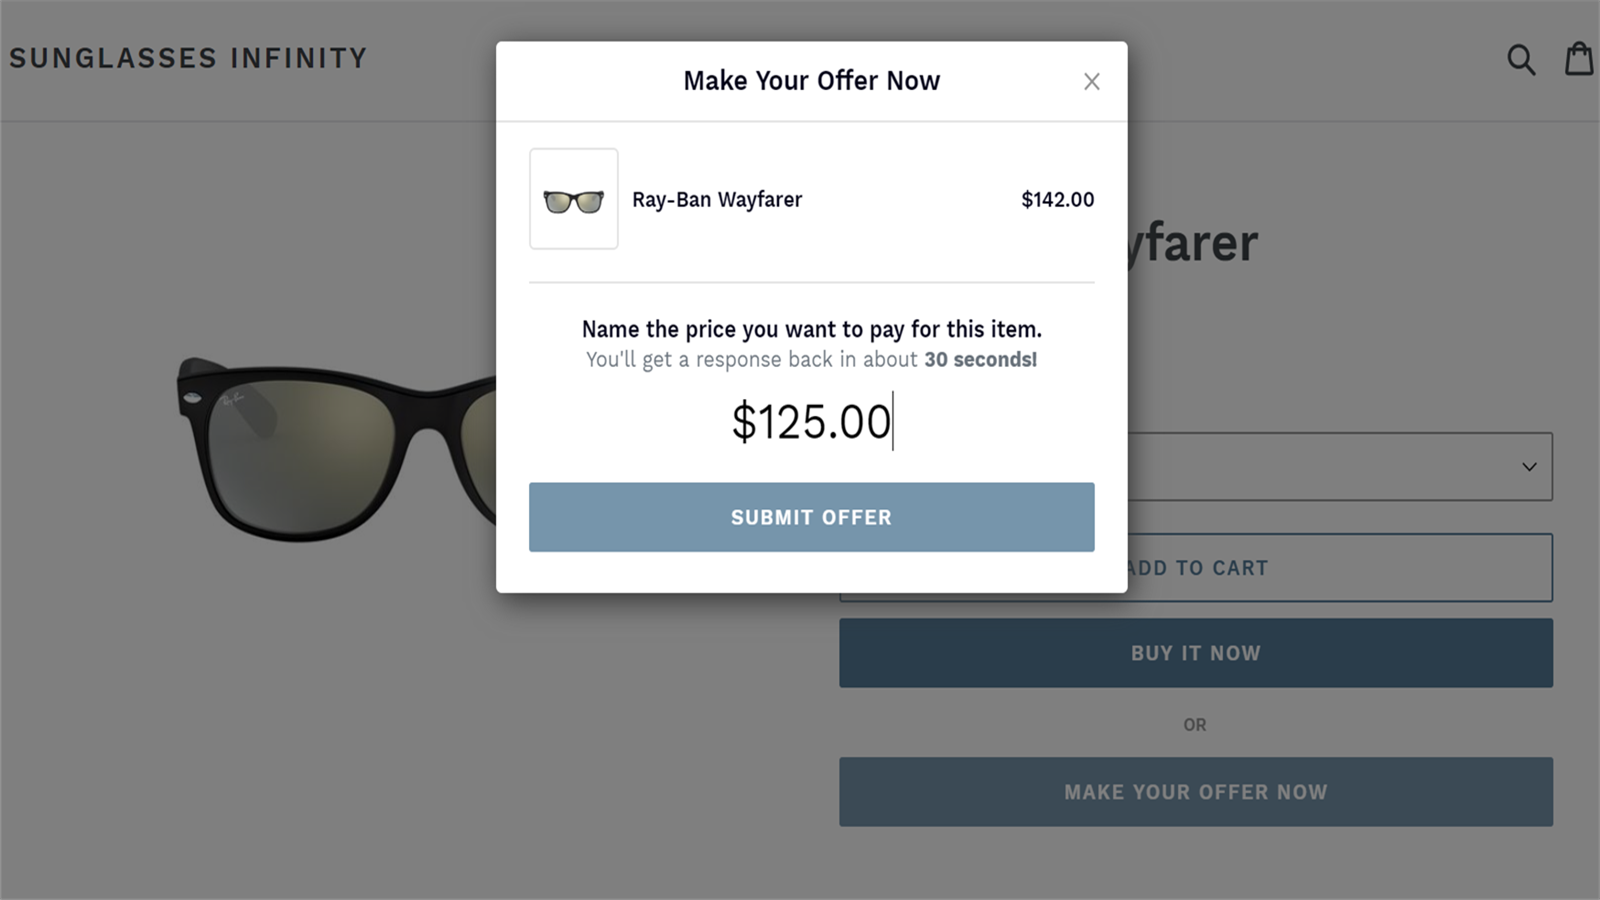 Enable shoppers to make a price offer to keep them on your store